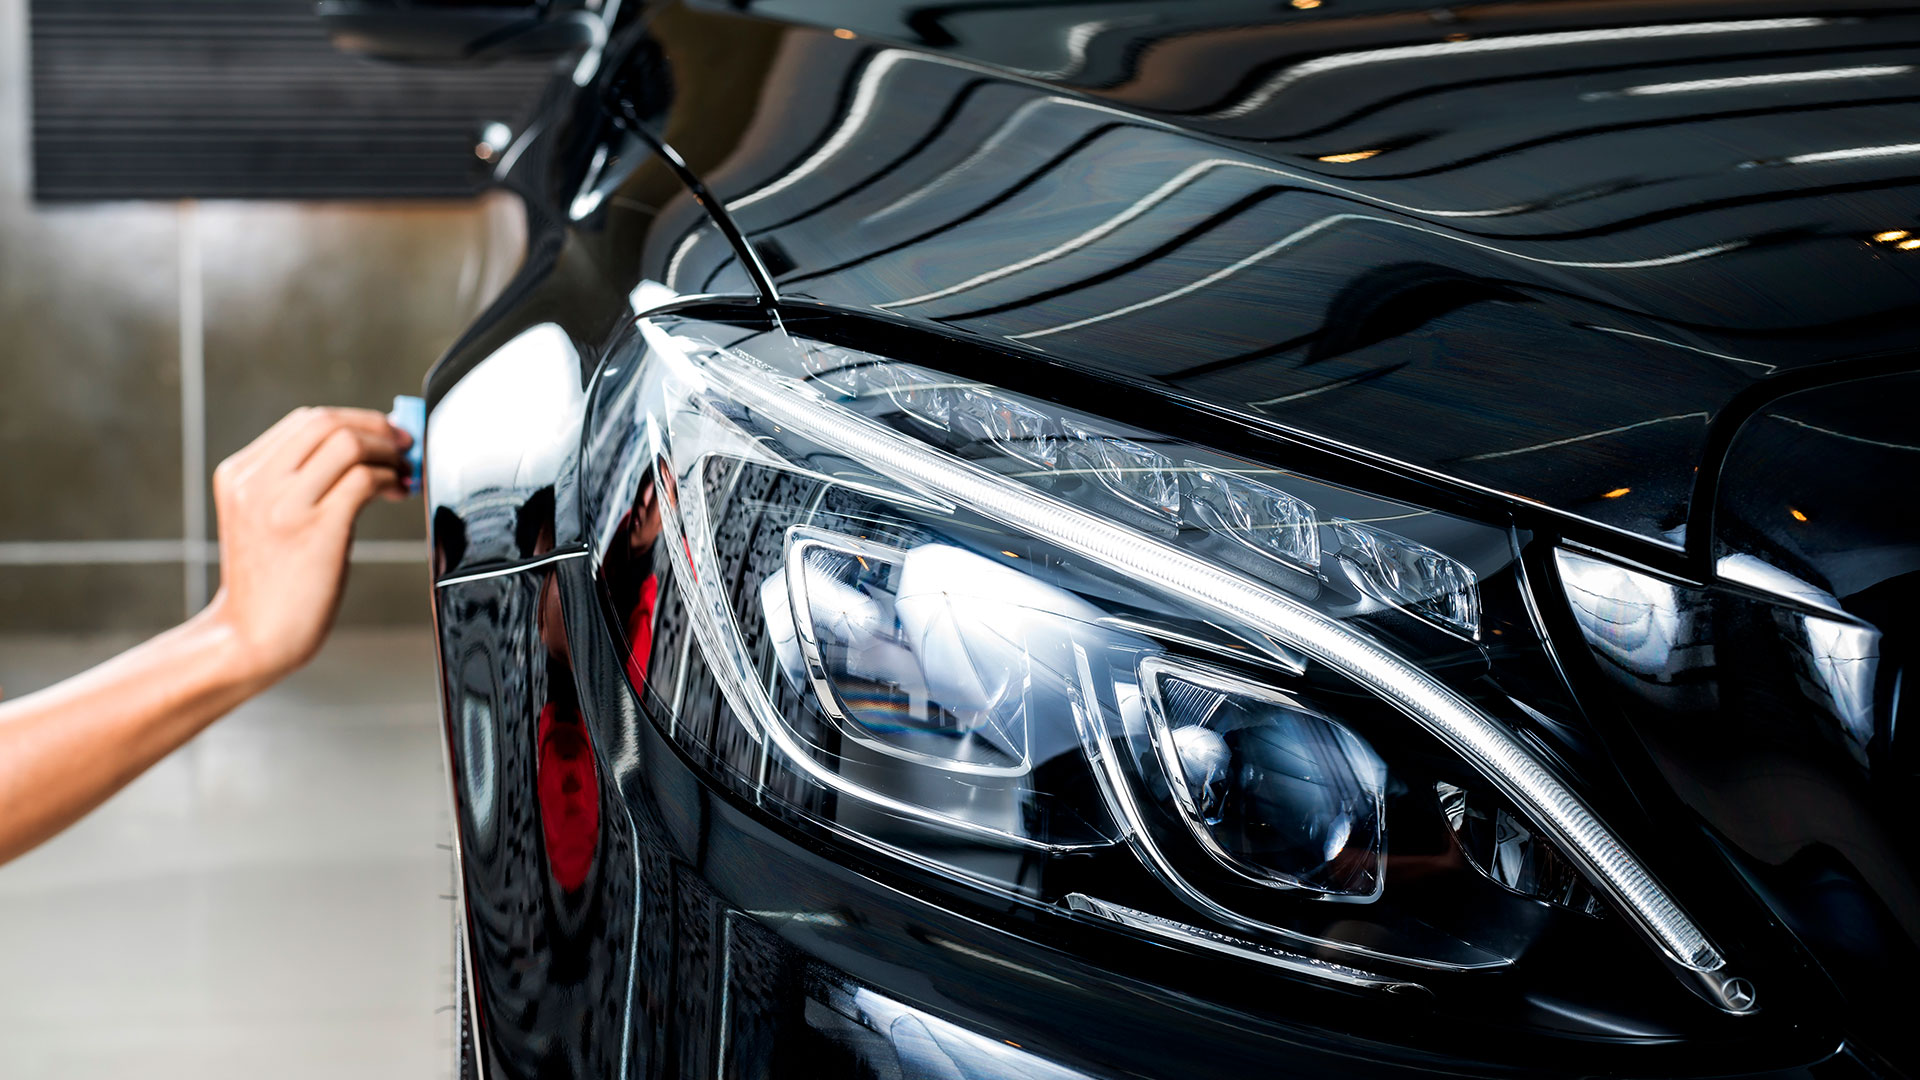 PRoffesional Auto Detailing - WE COME TO YOU!